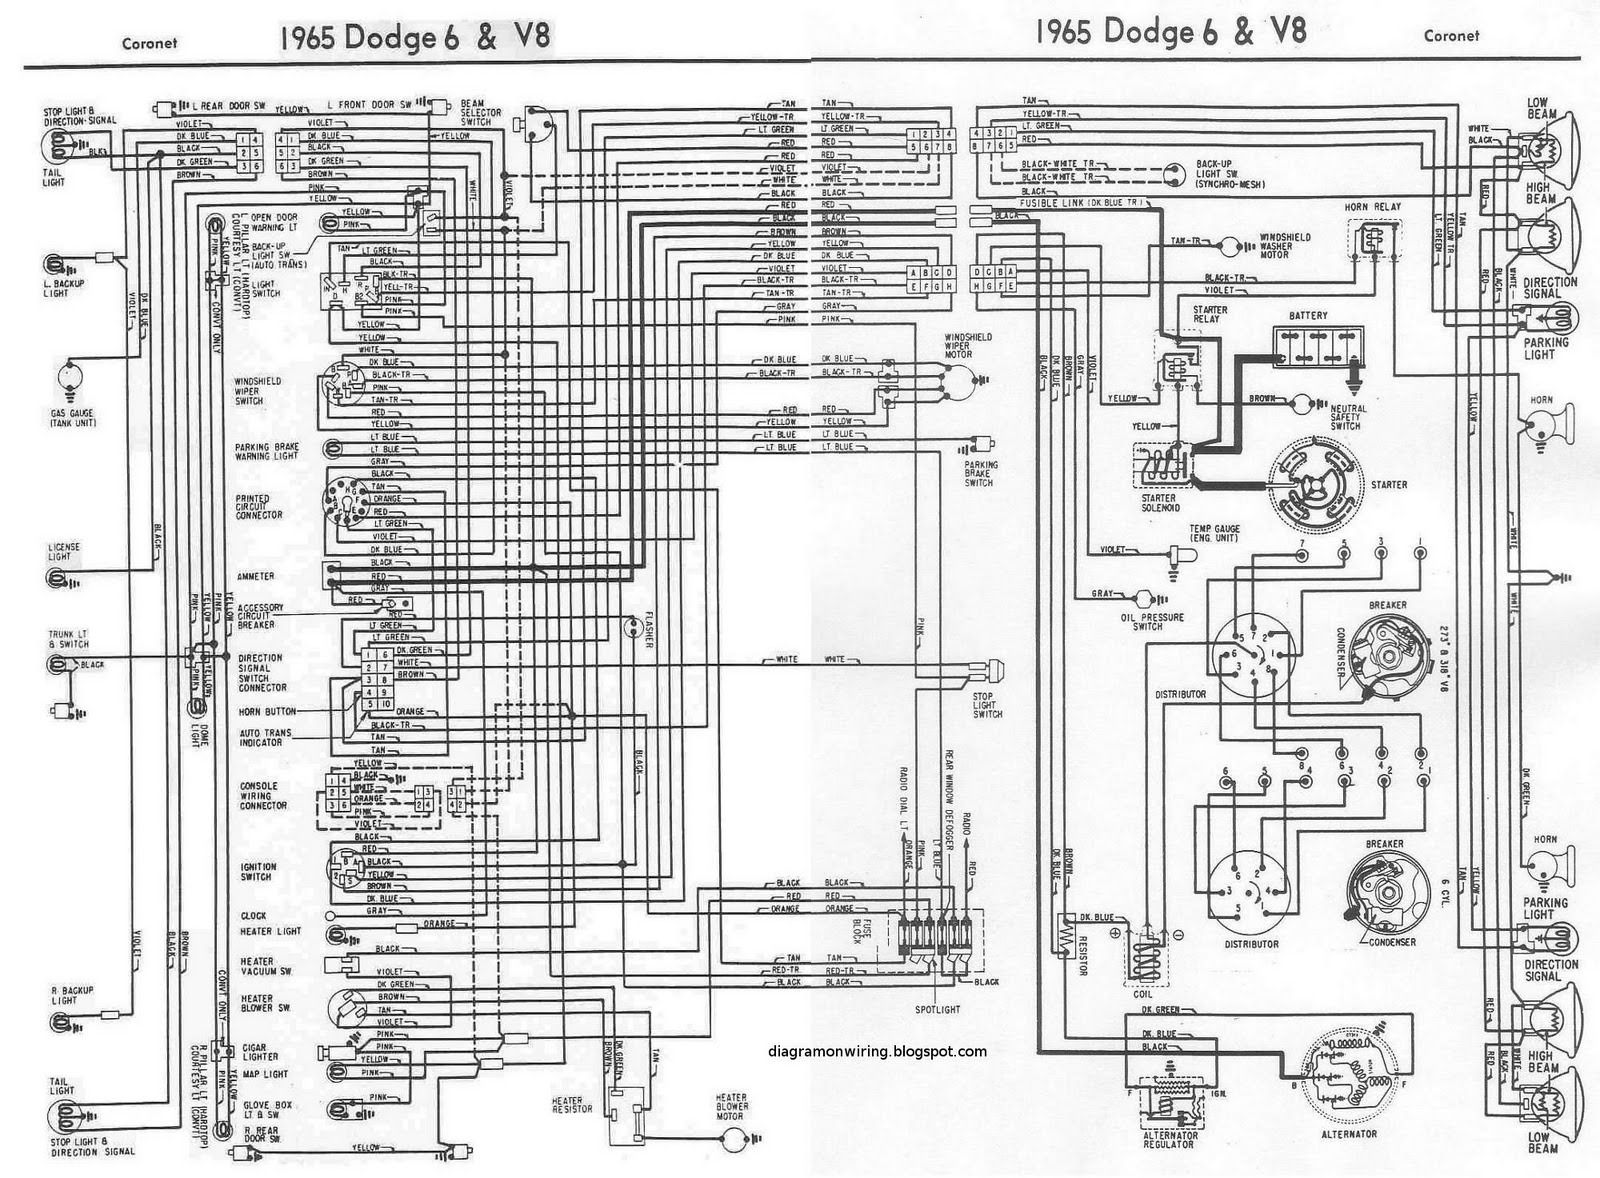 69 Gtx Wiring Diagram Library Road Runner Schematic Dodge 6 And V8 Coronet 1965 Complete All About Diagrams 68 65